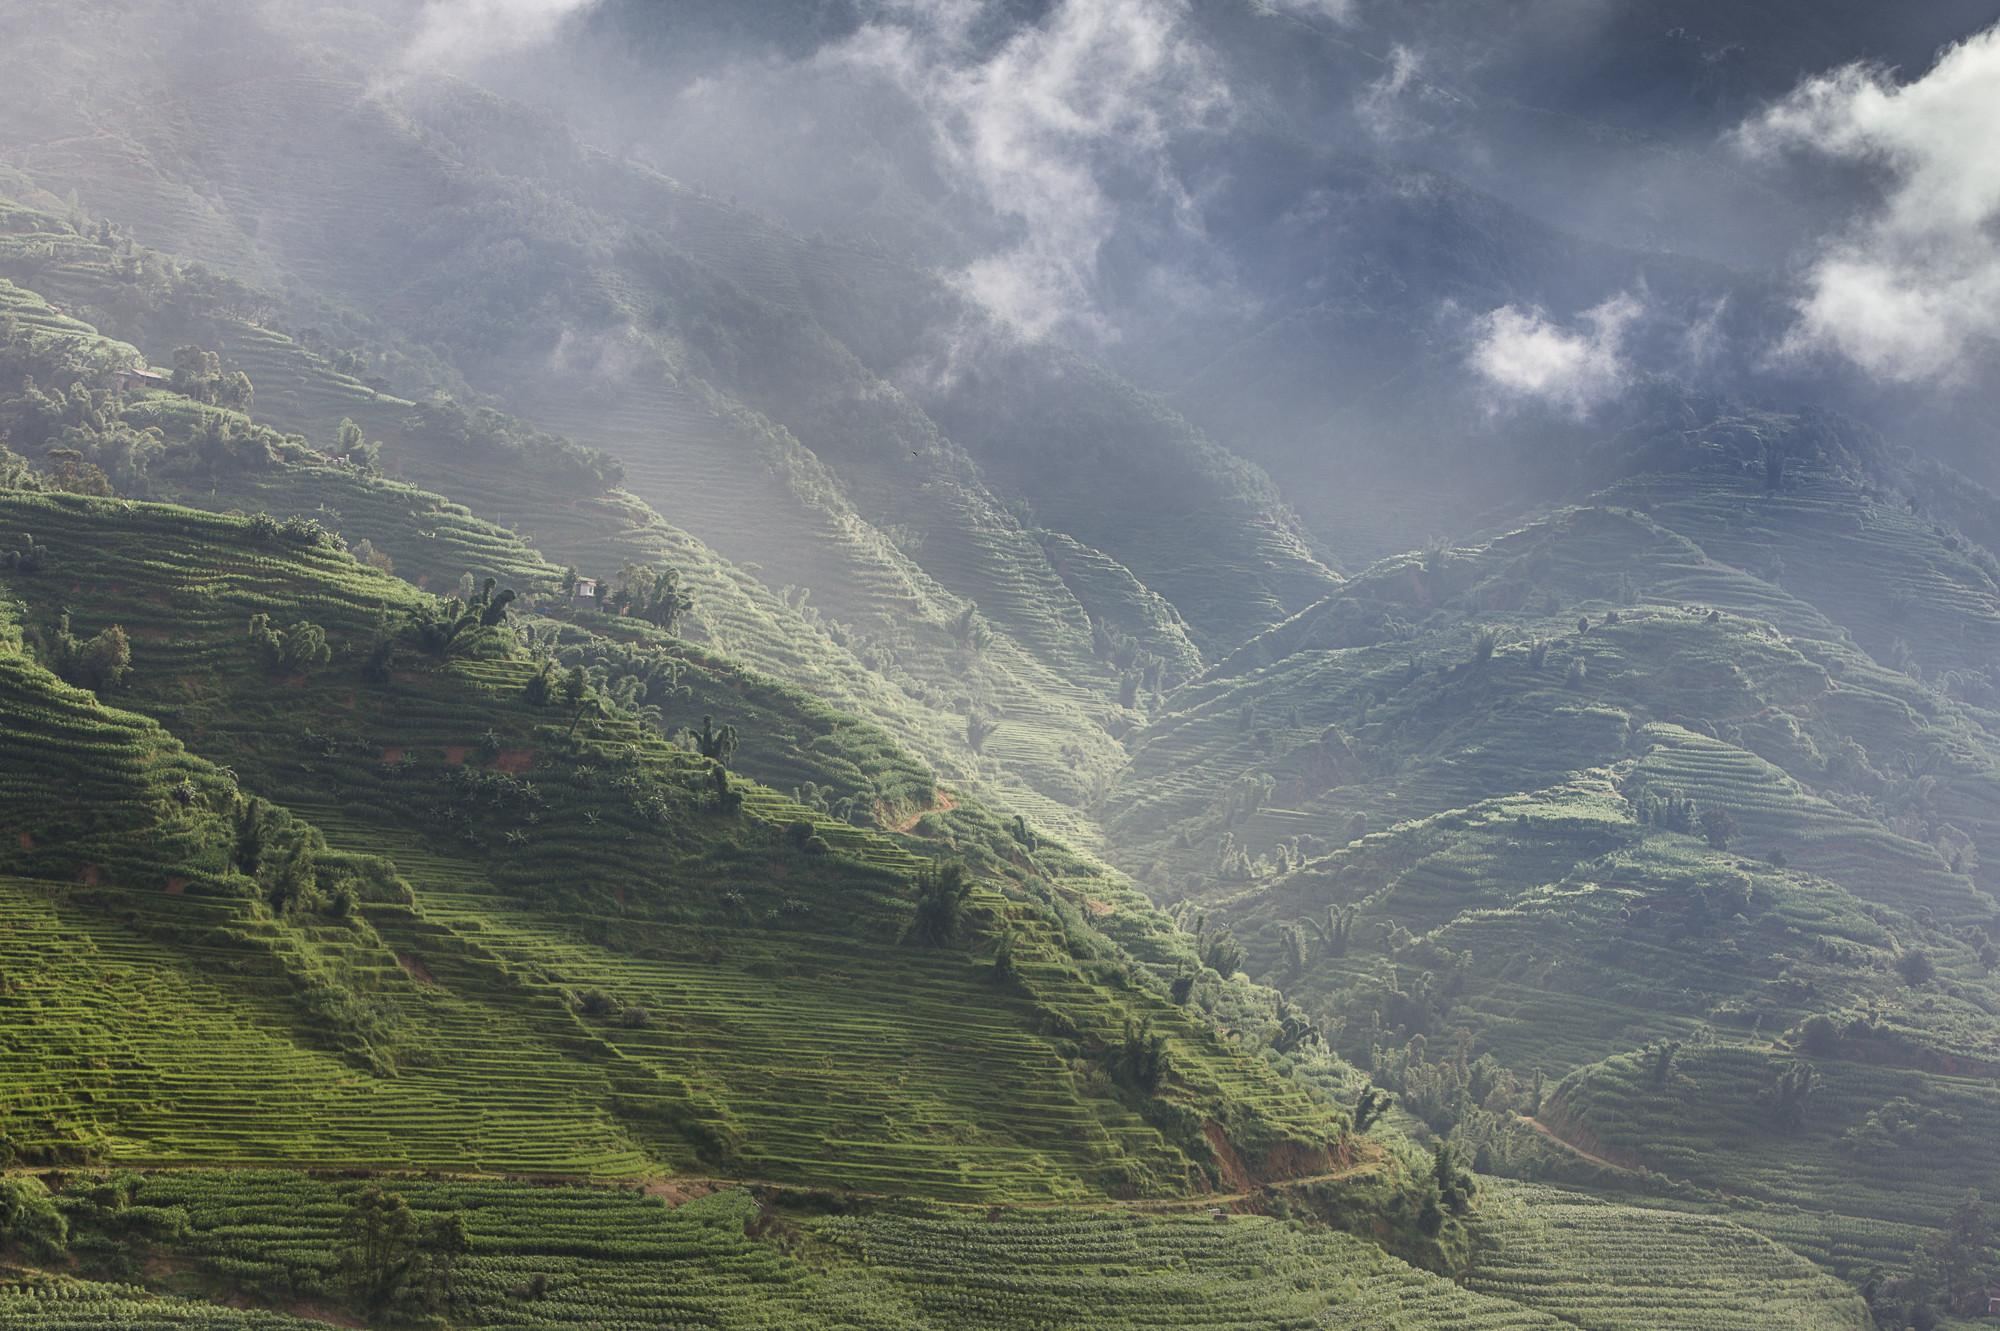 Terraced hillsides in Yunnan province courtesy Rainforest Alliance